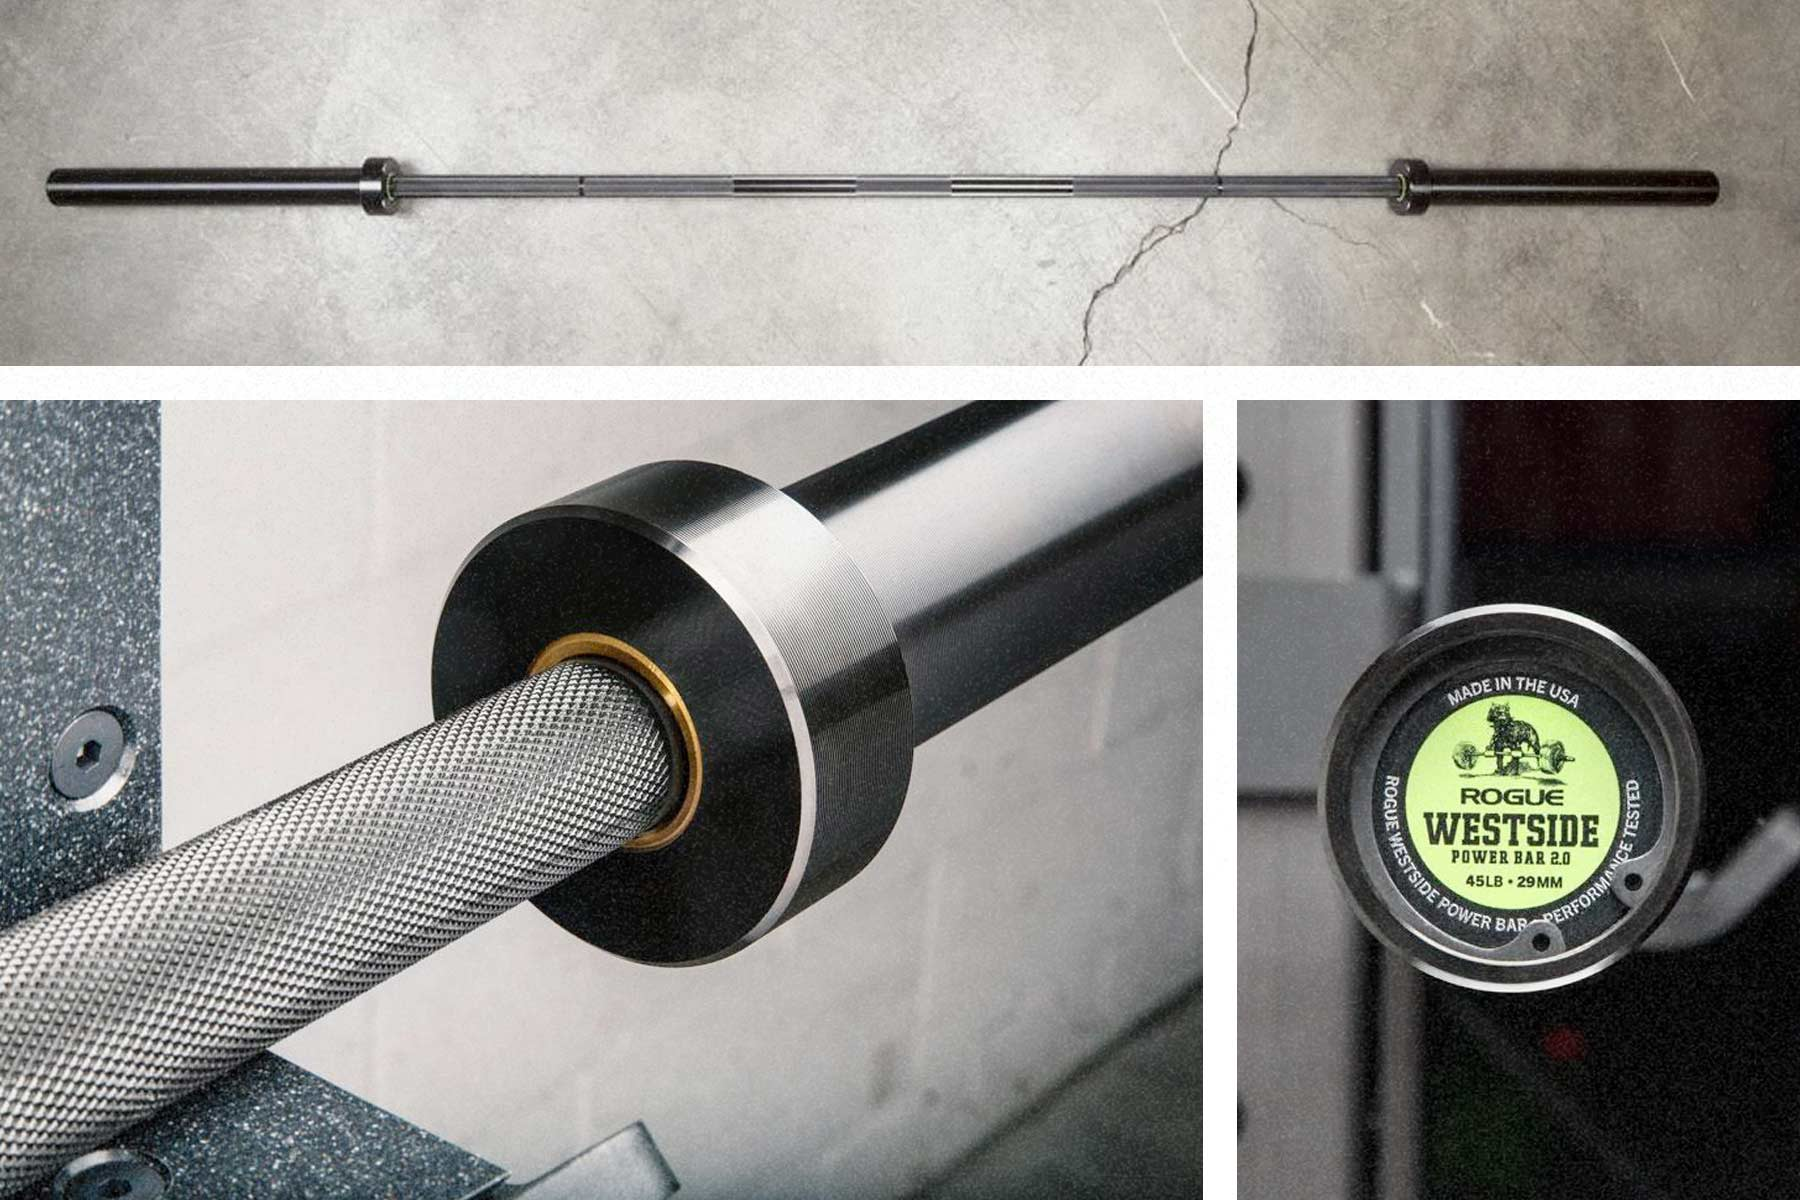 Rogue Westside Power Barbell